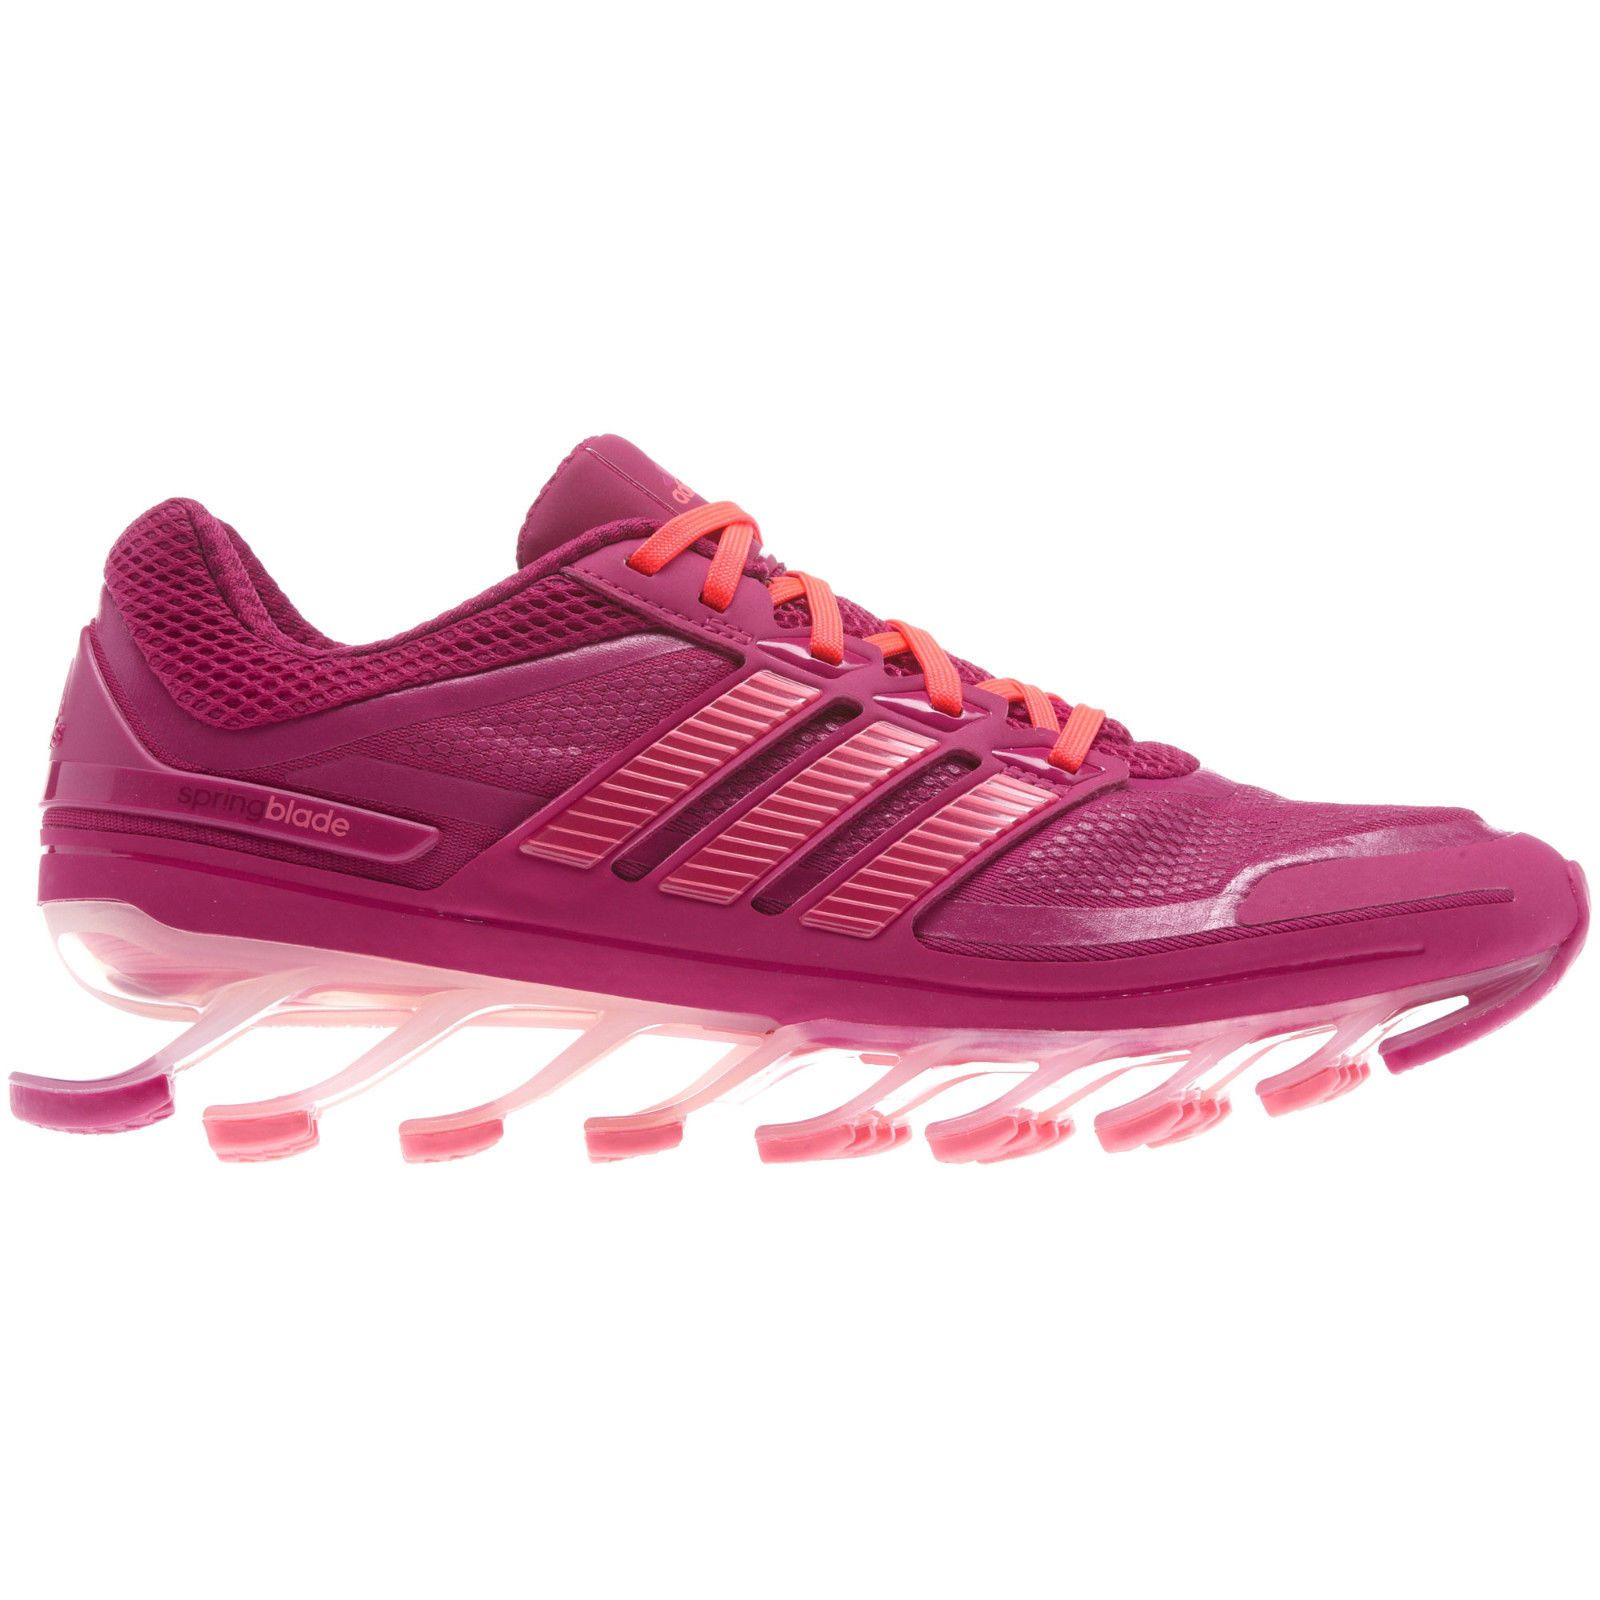 Buy adidas springblade 6 kids Pink   OFF49% Discounted 9ceadfbe8